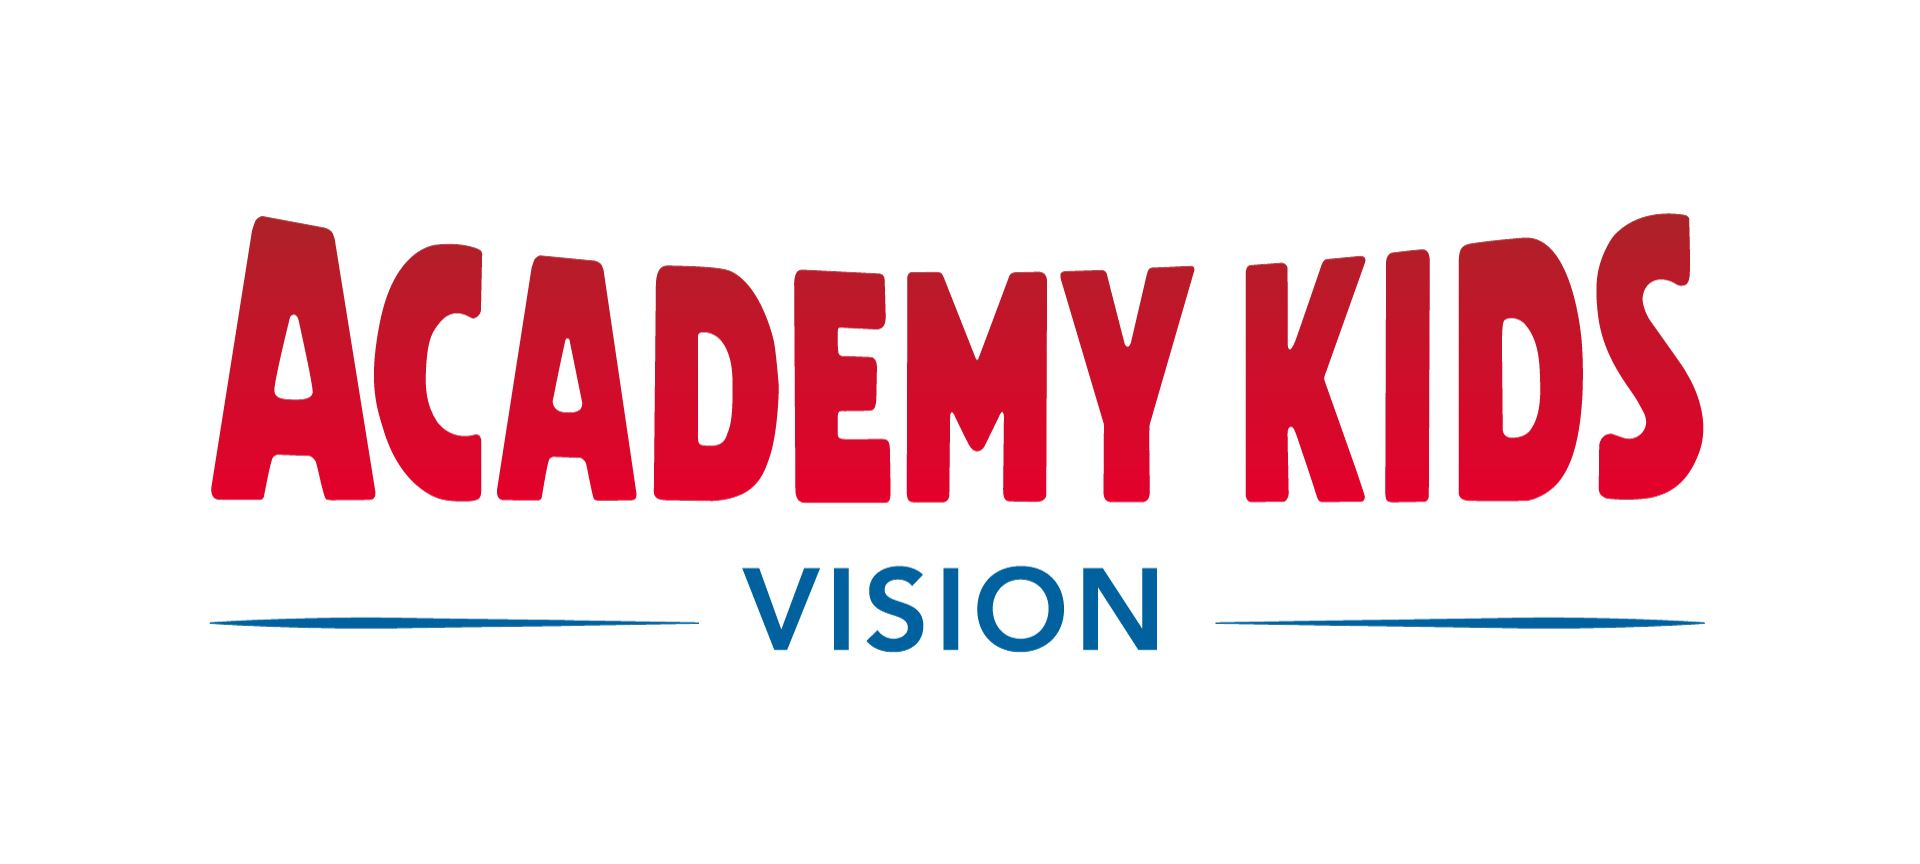 Academy Kids Vision